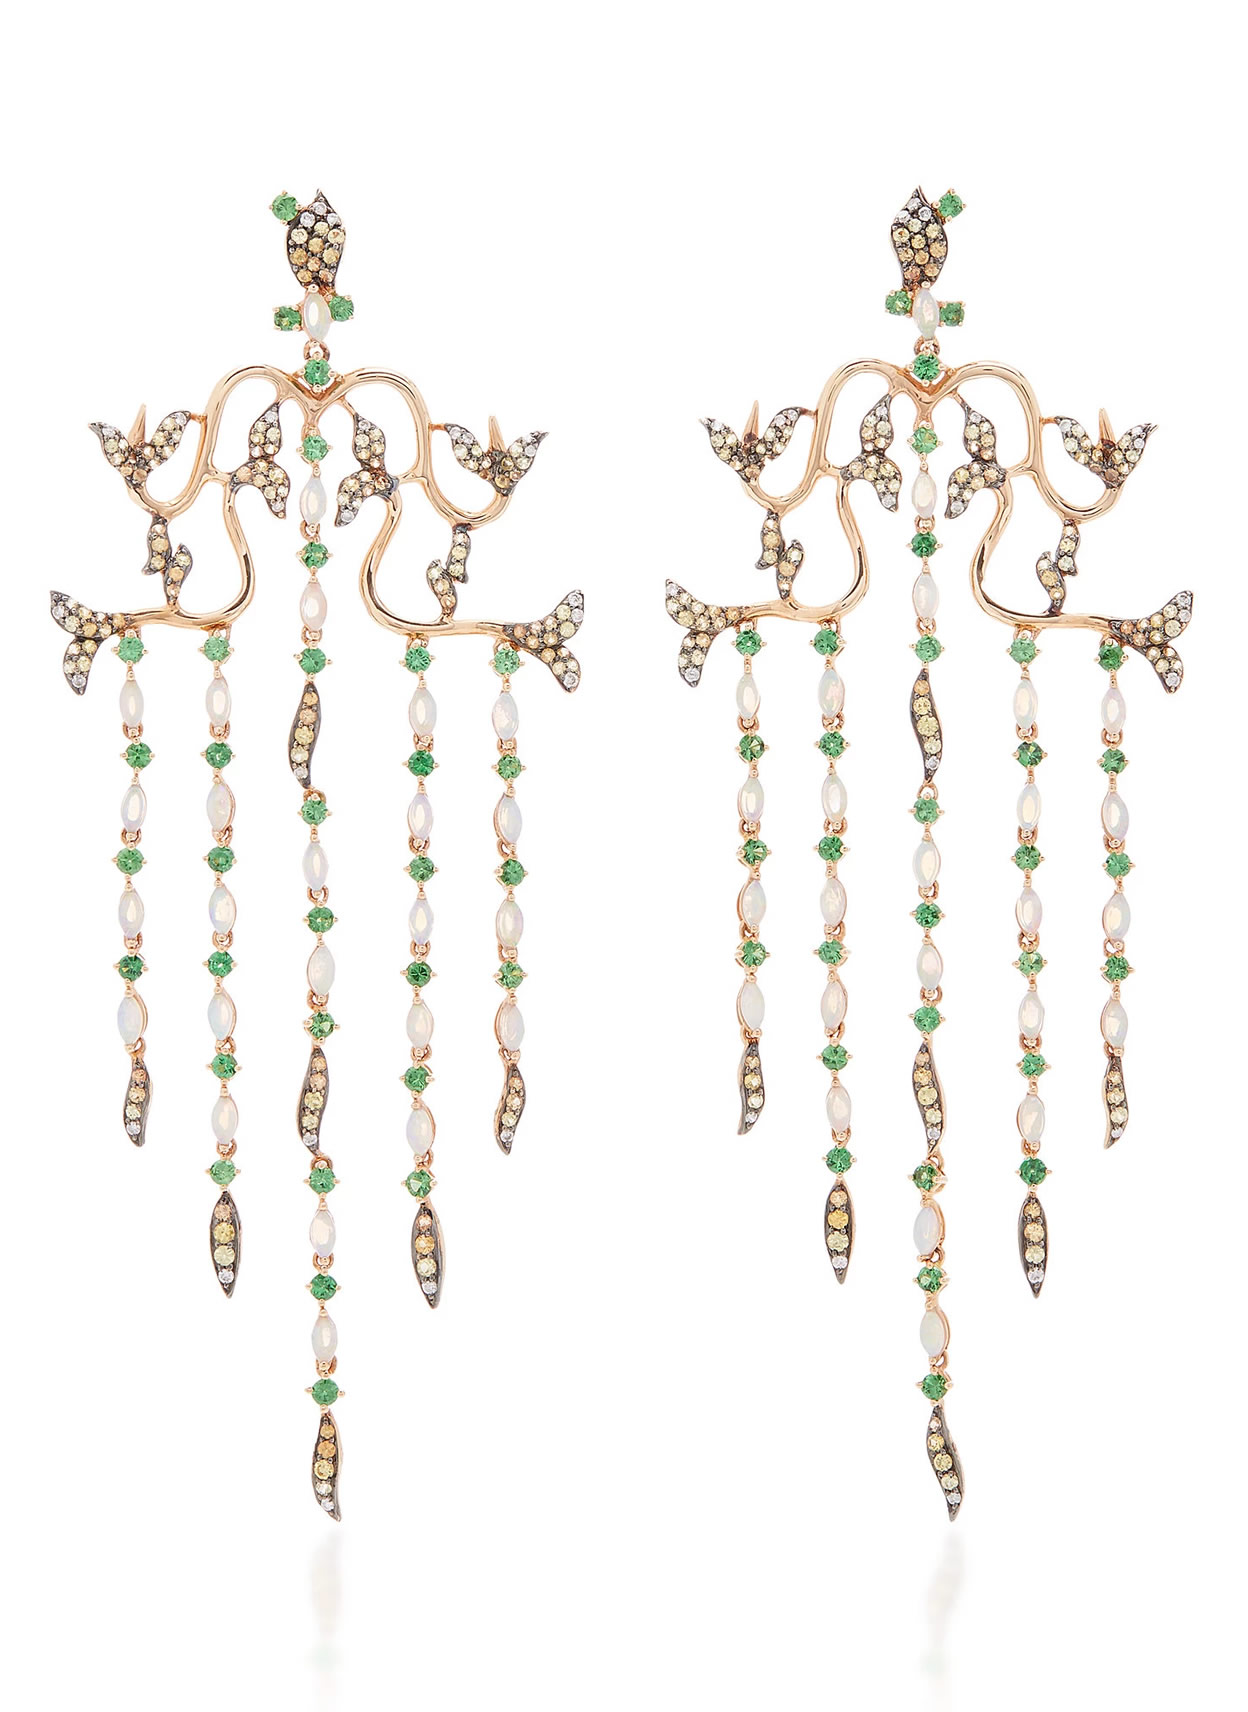 Mondo Bridal - Wendy Yue / Opal Waterfall Earrings